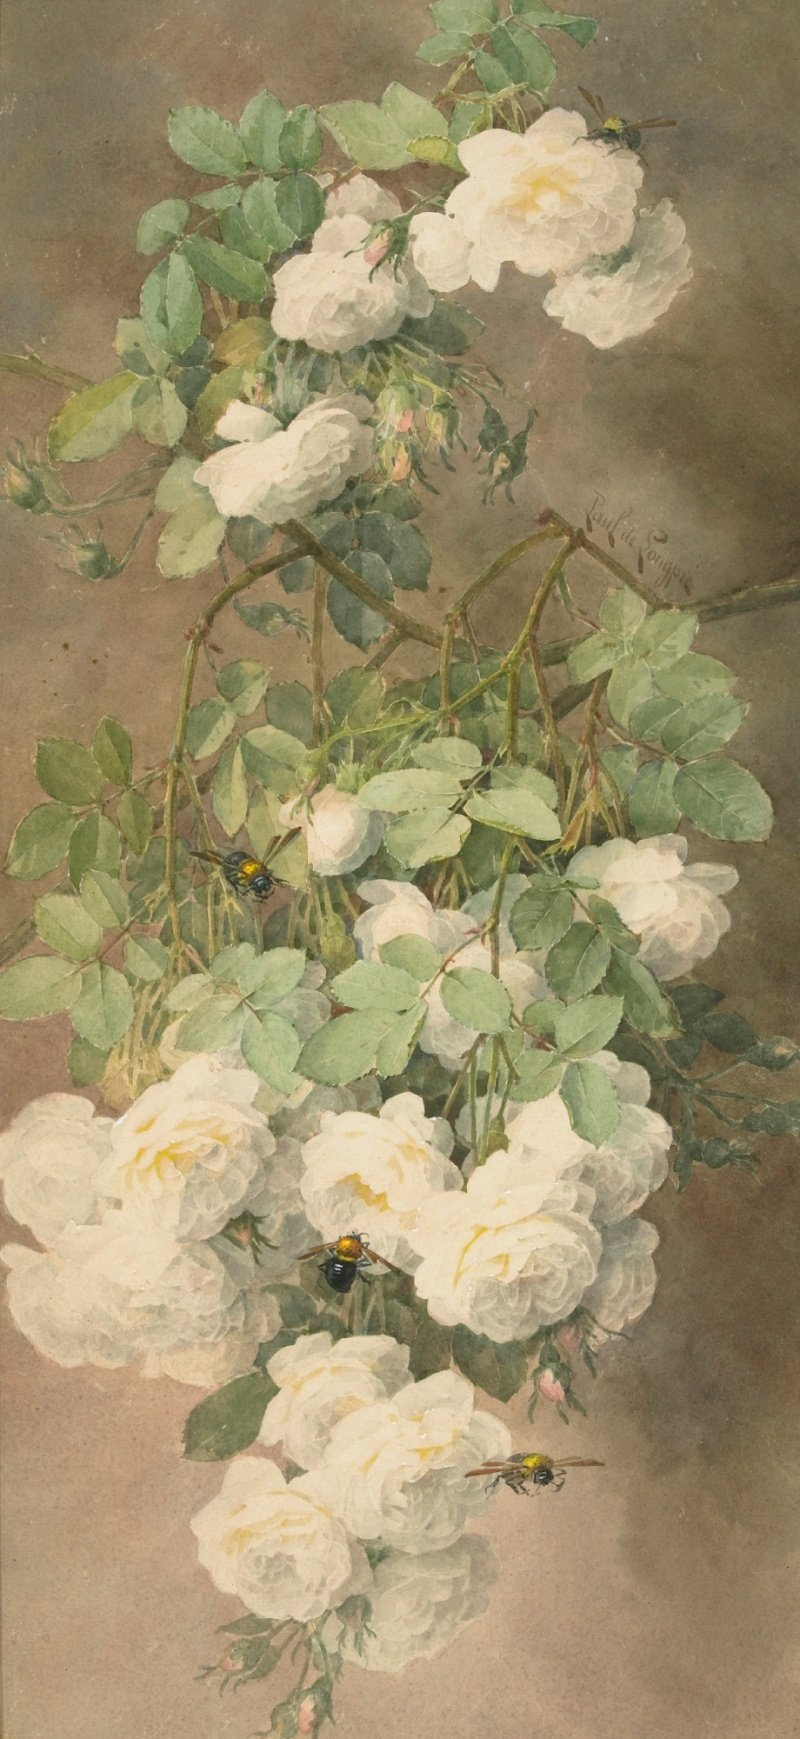 Paul de Longpre - White Roses and Bumblebees' c. 1900